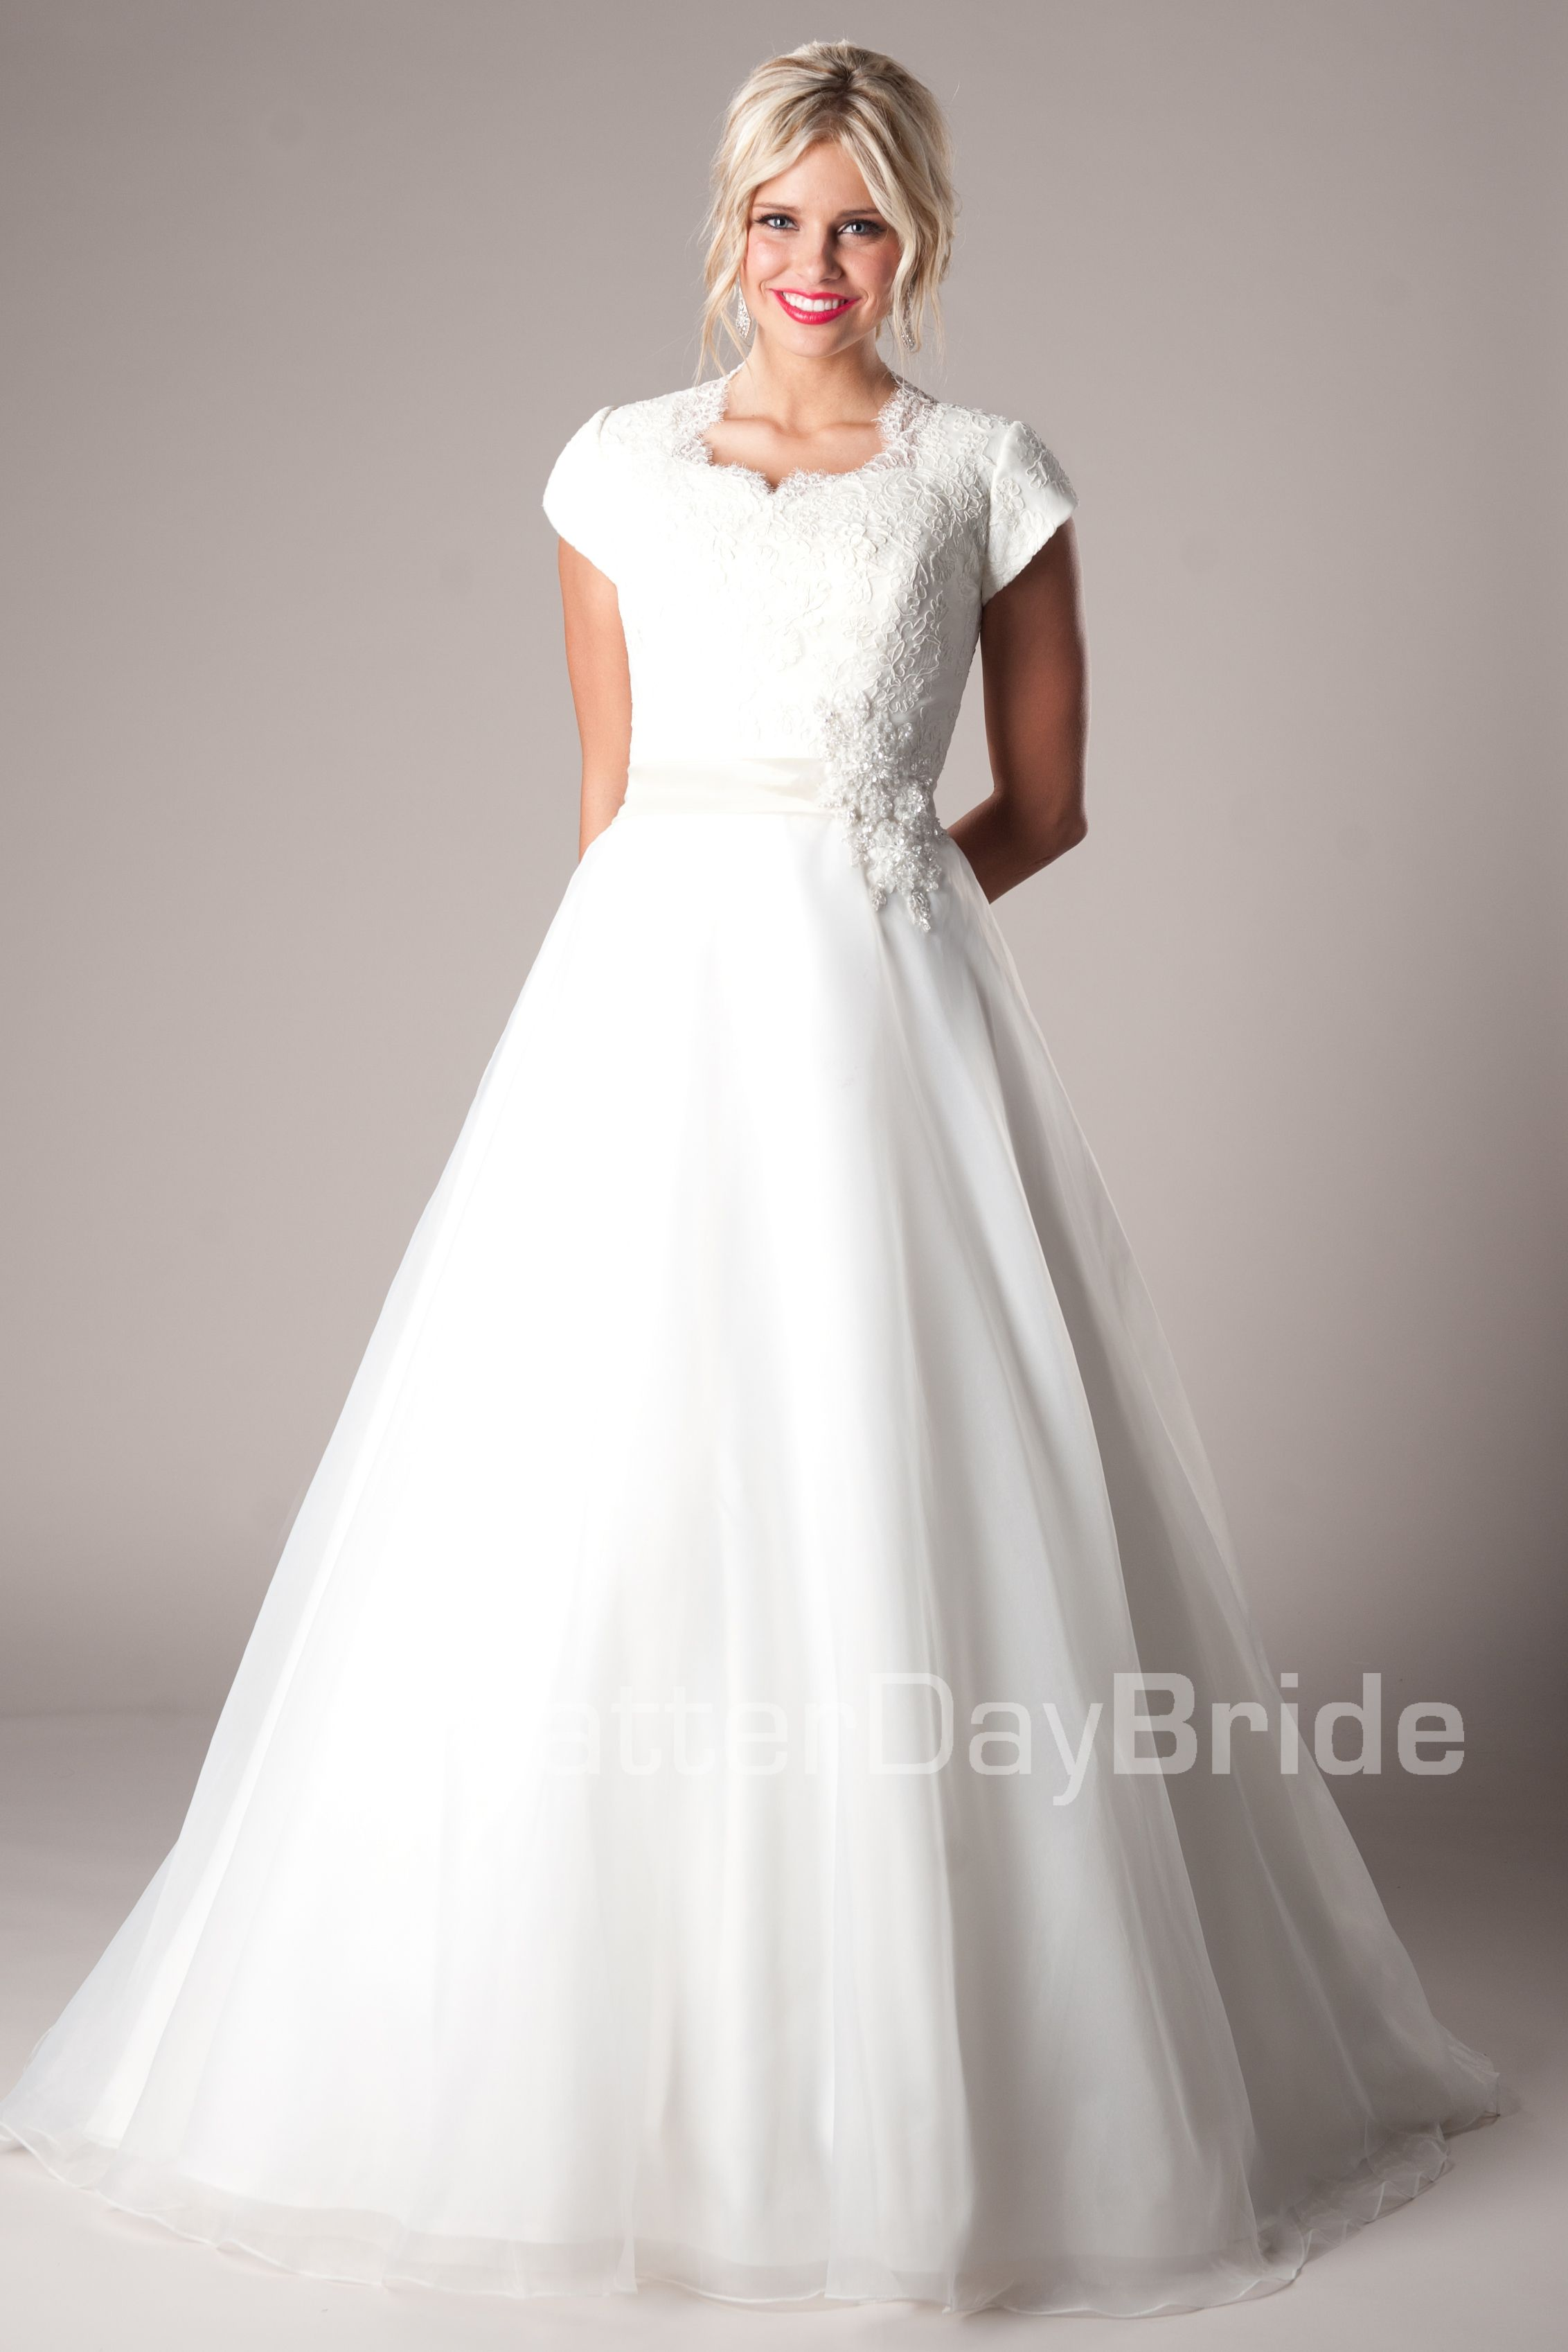 Modest wedding dresses modest wedding dresses mormon for Mormon modest wedding dresses